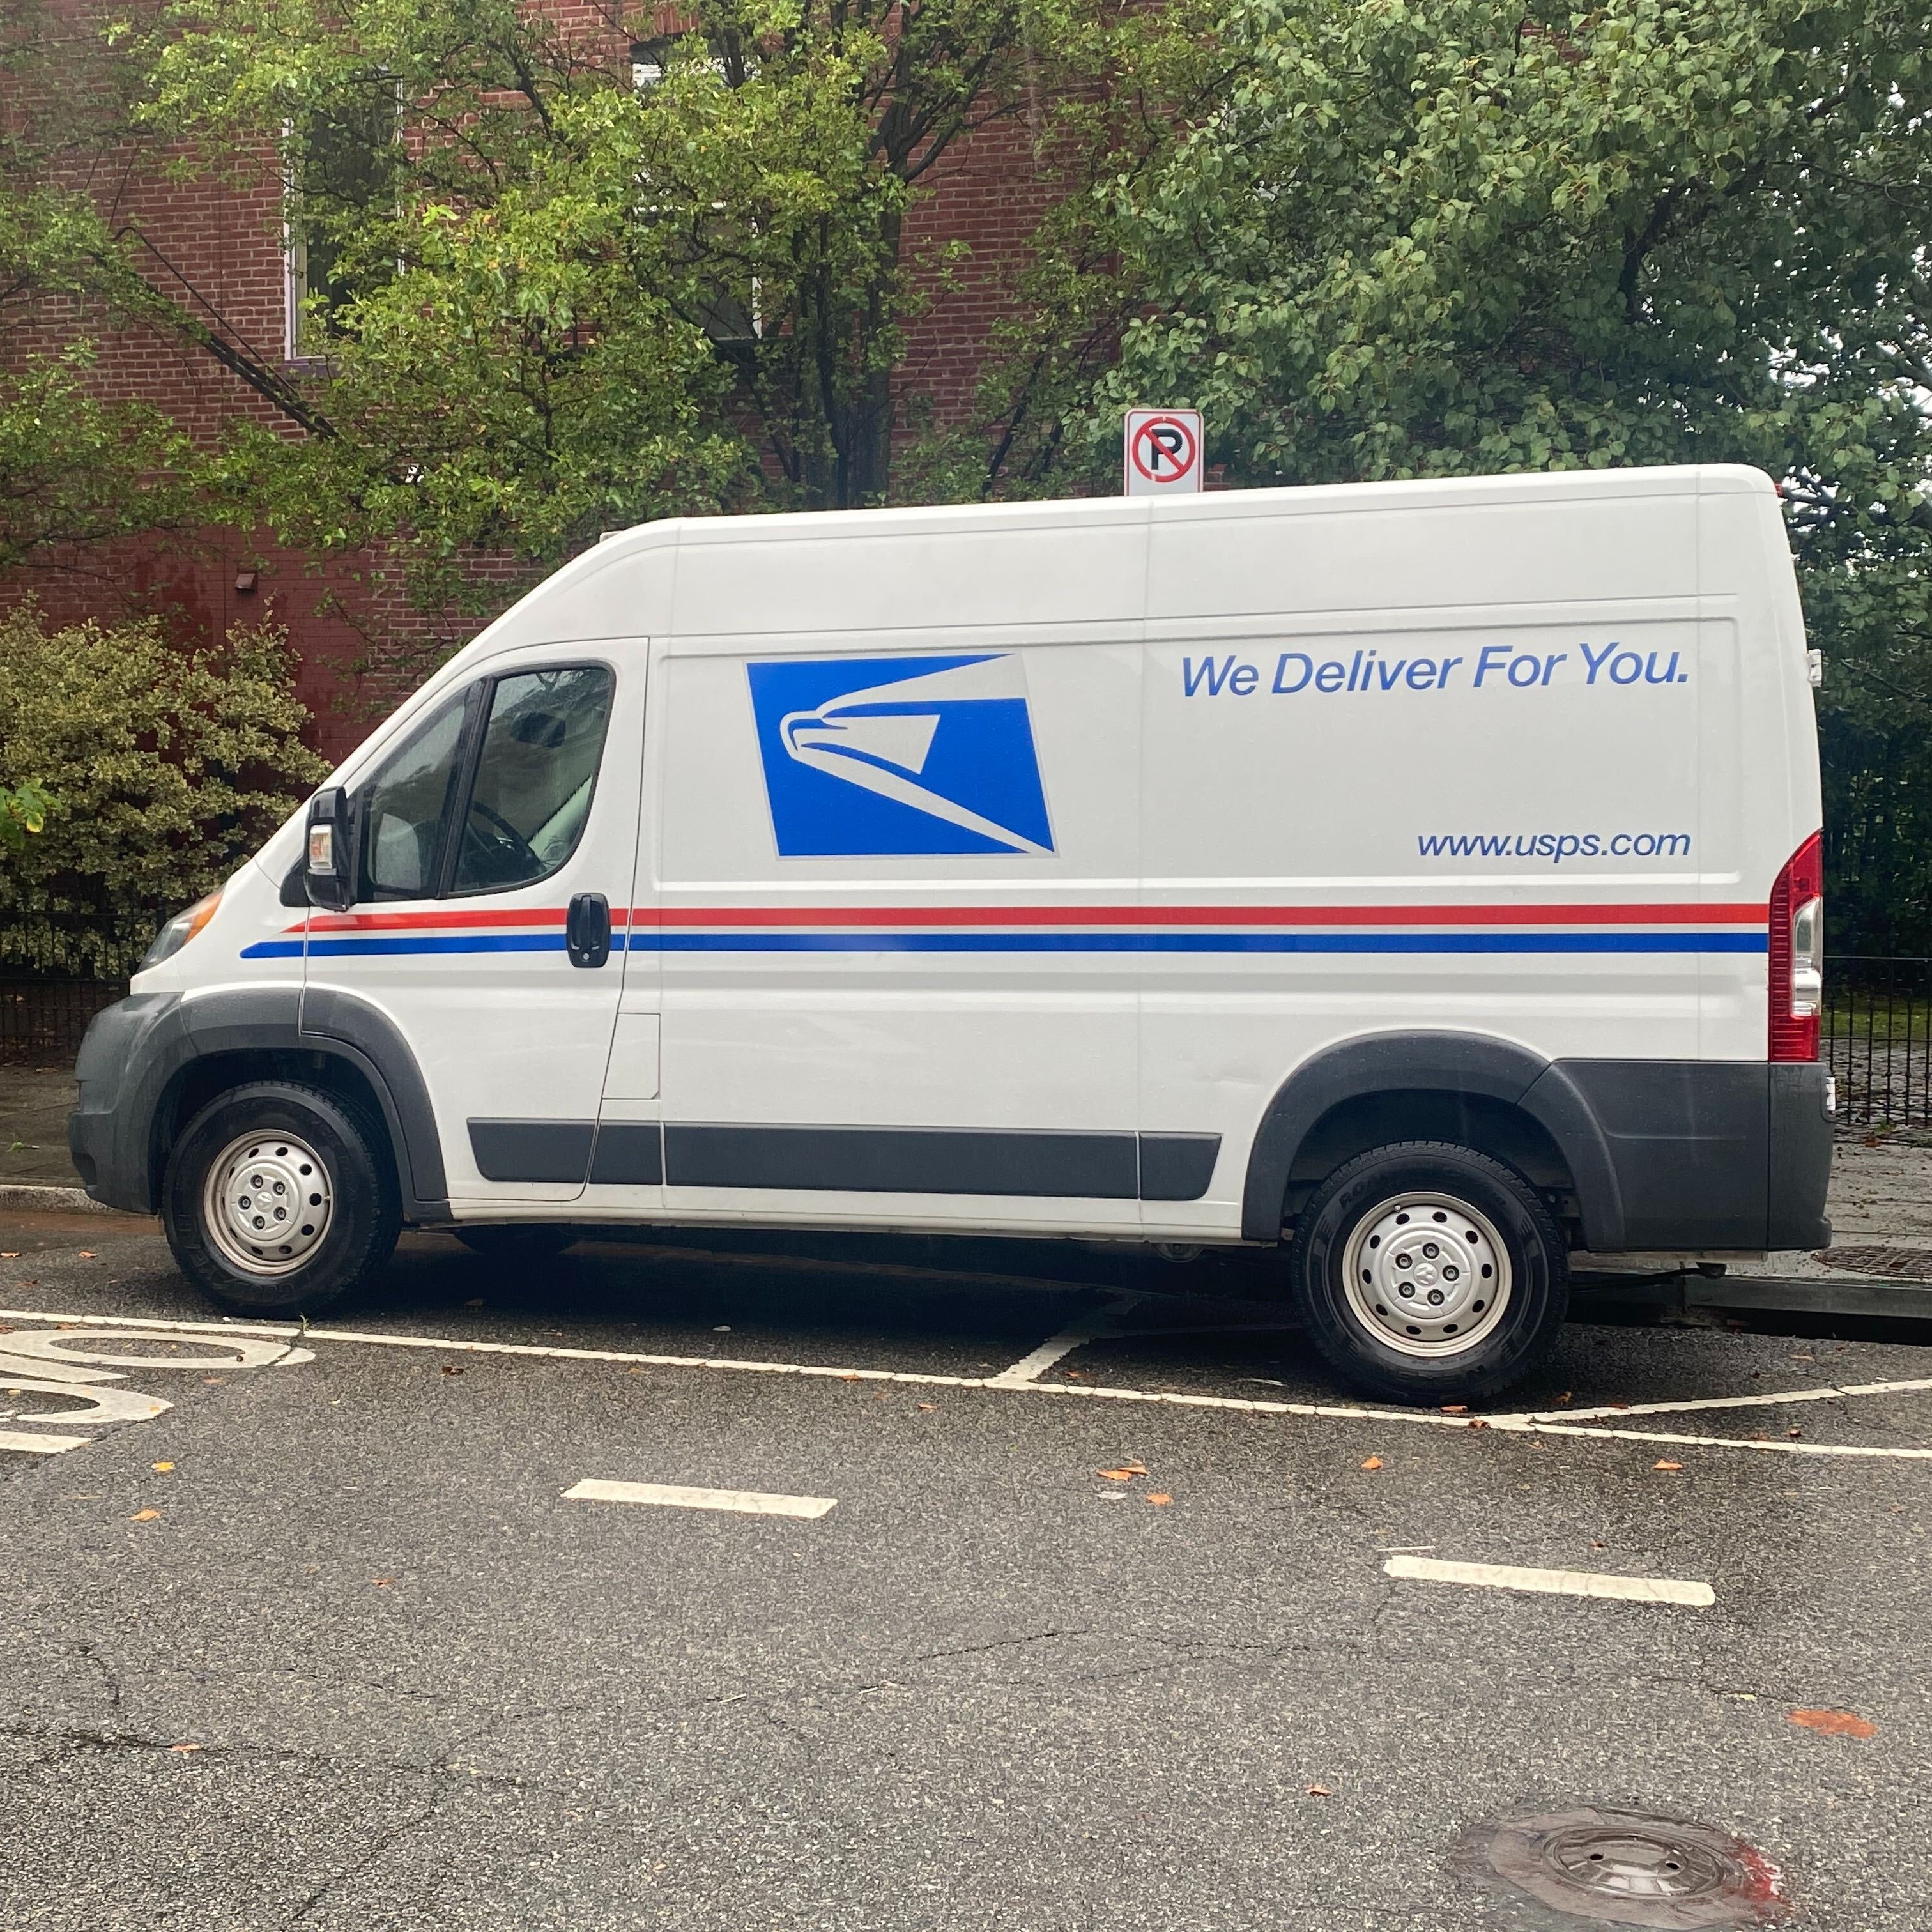 Post Office Delivery Trucks Keep Catching On Fire